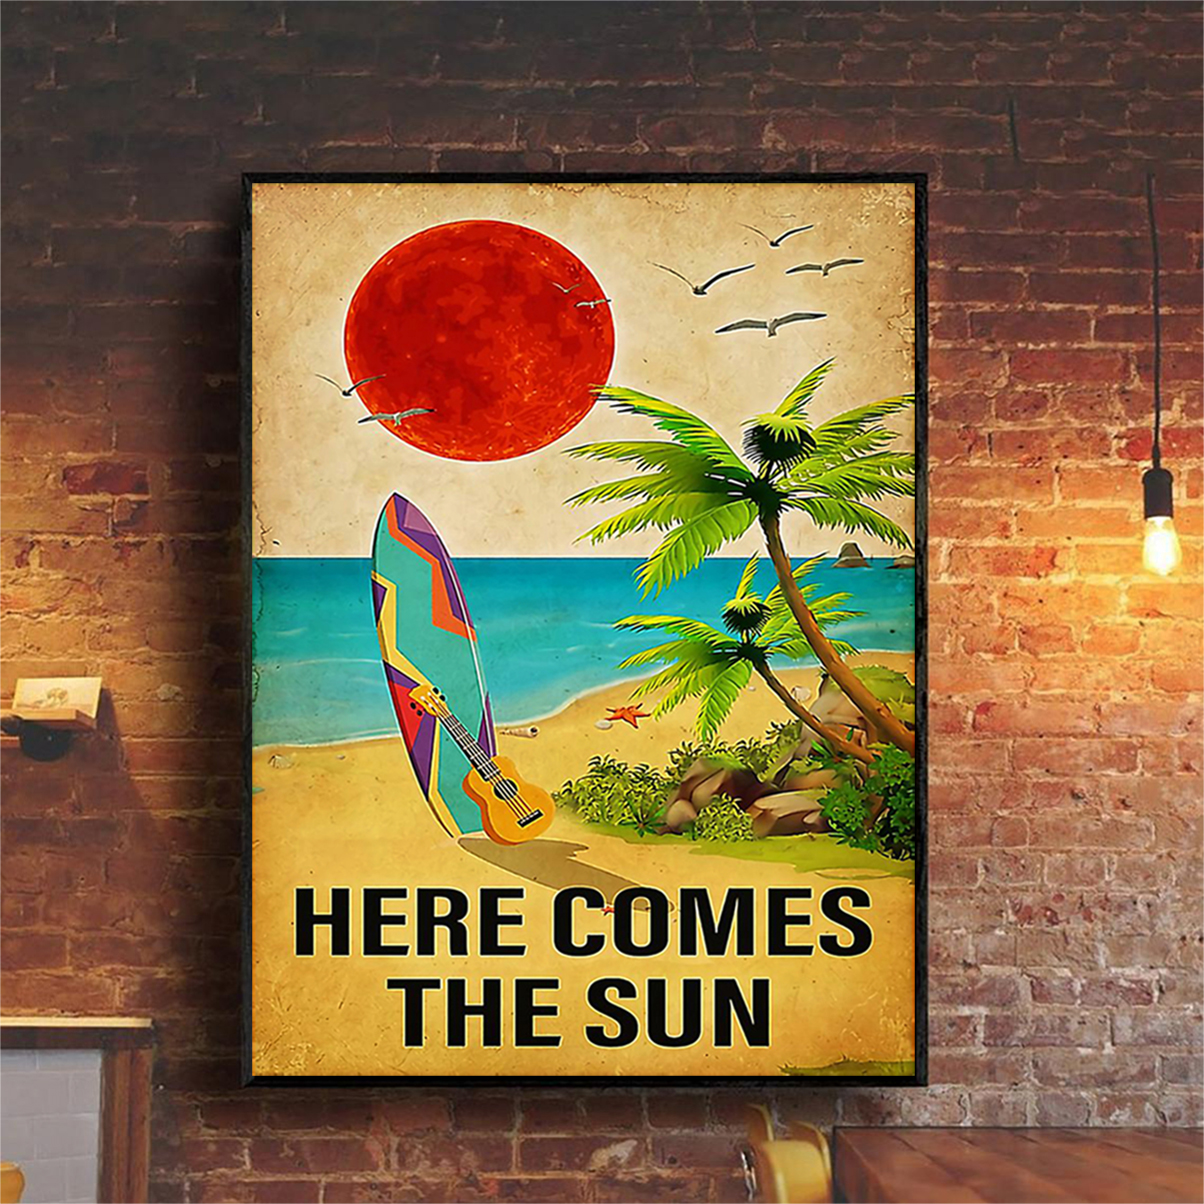 Surfing here comes the sun poster A2